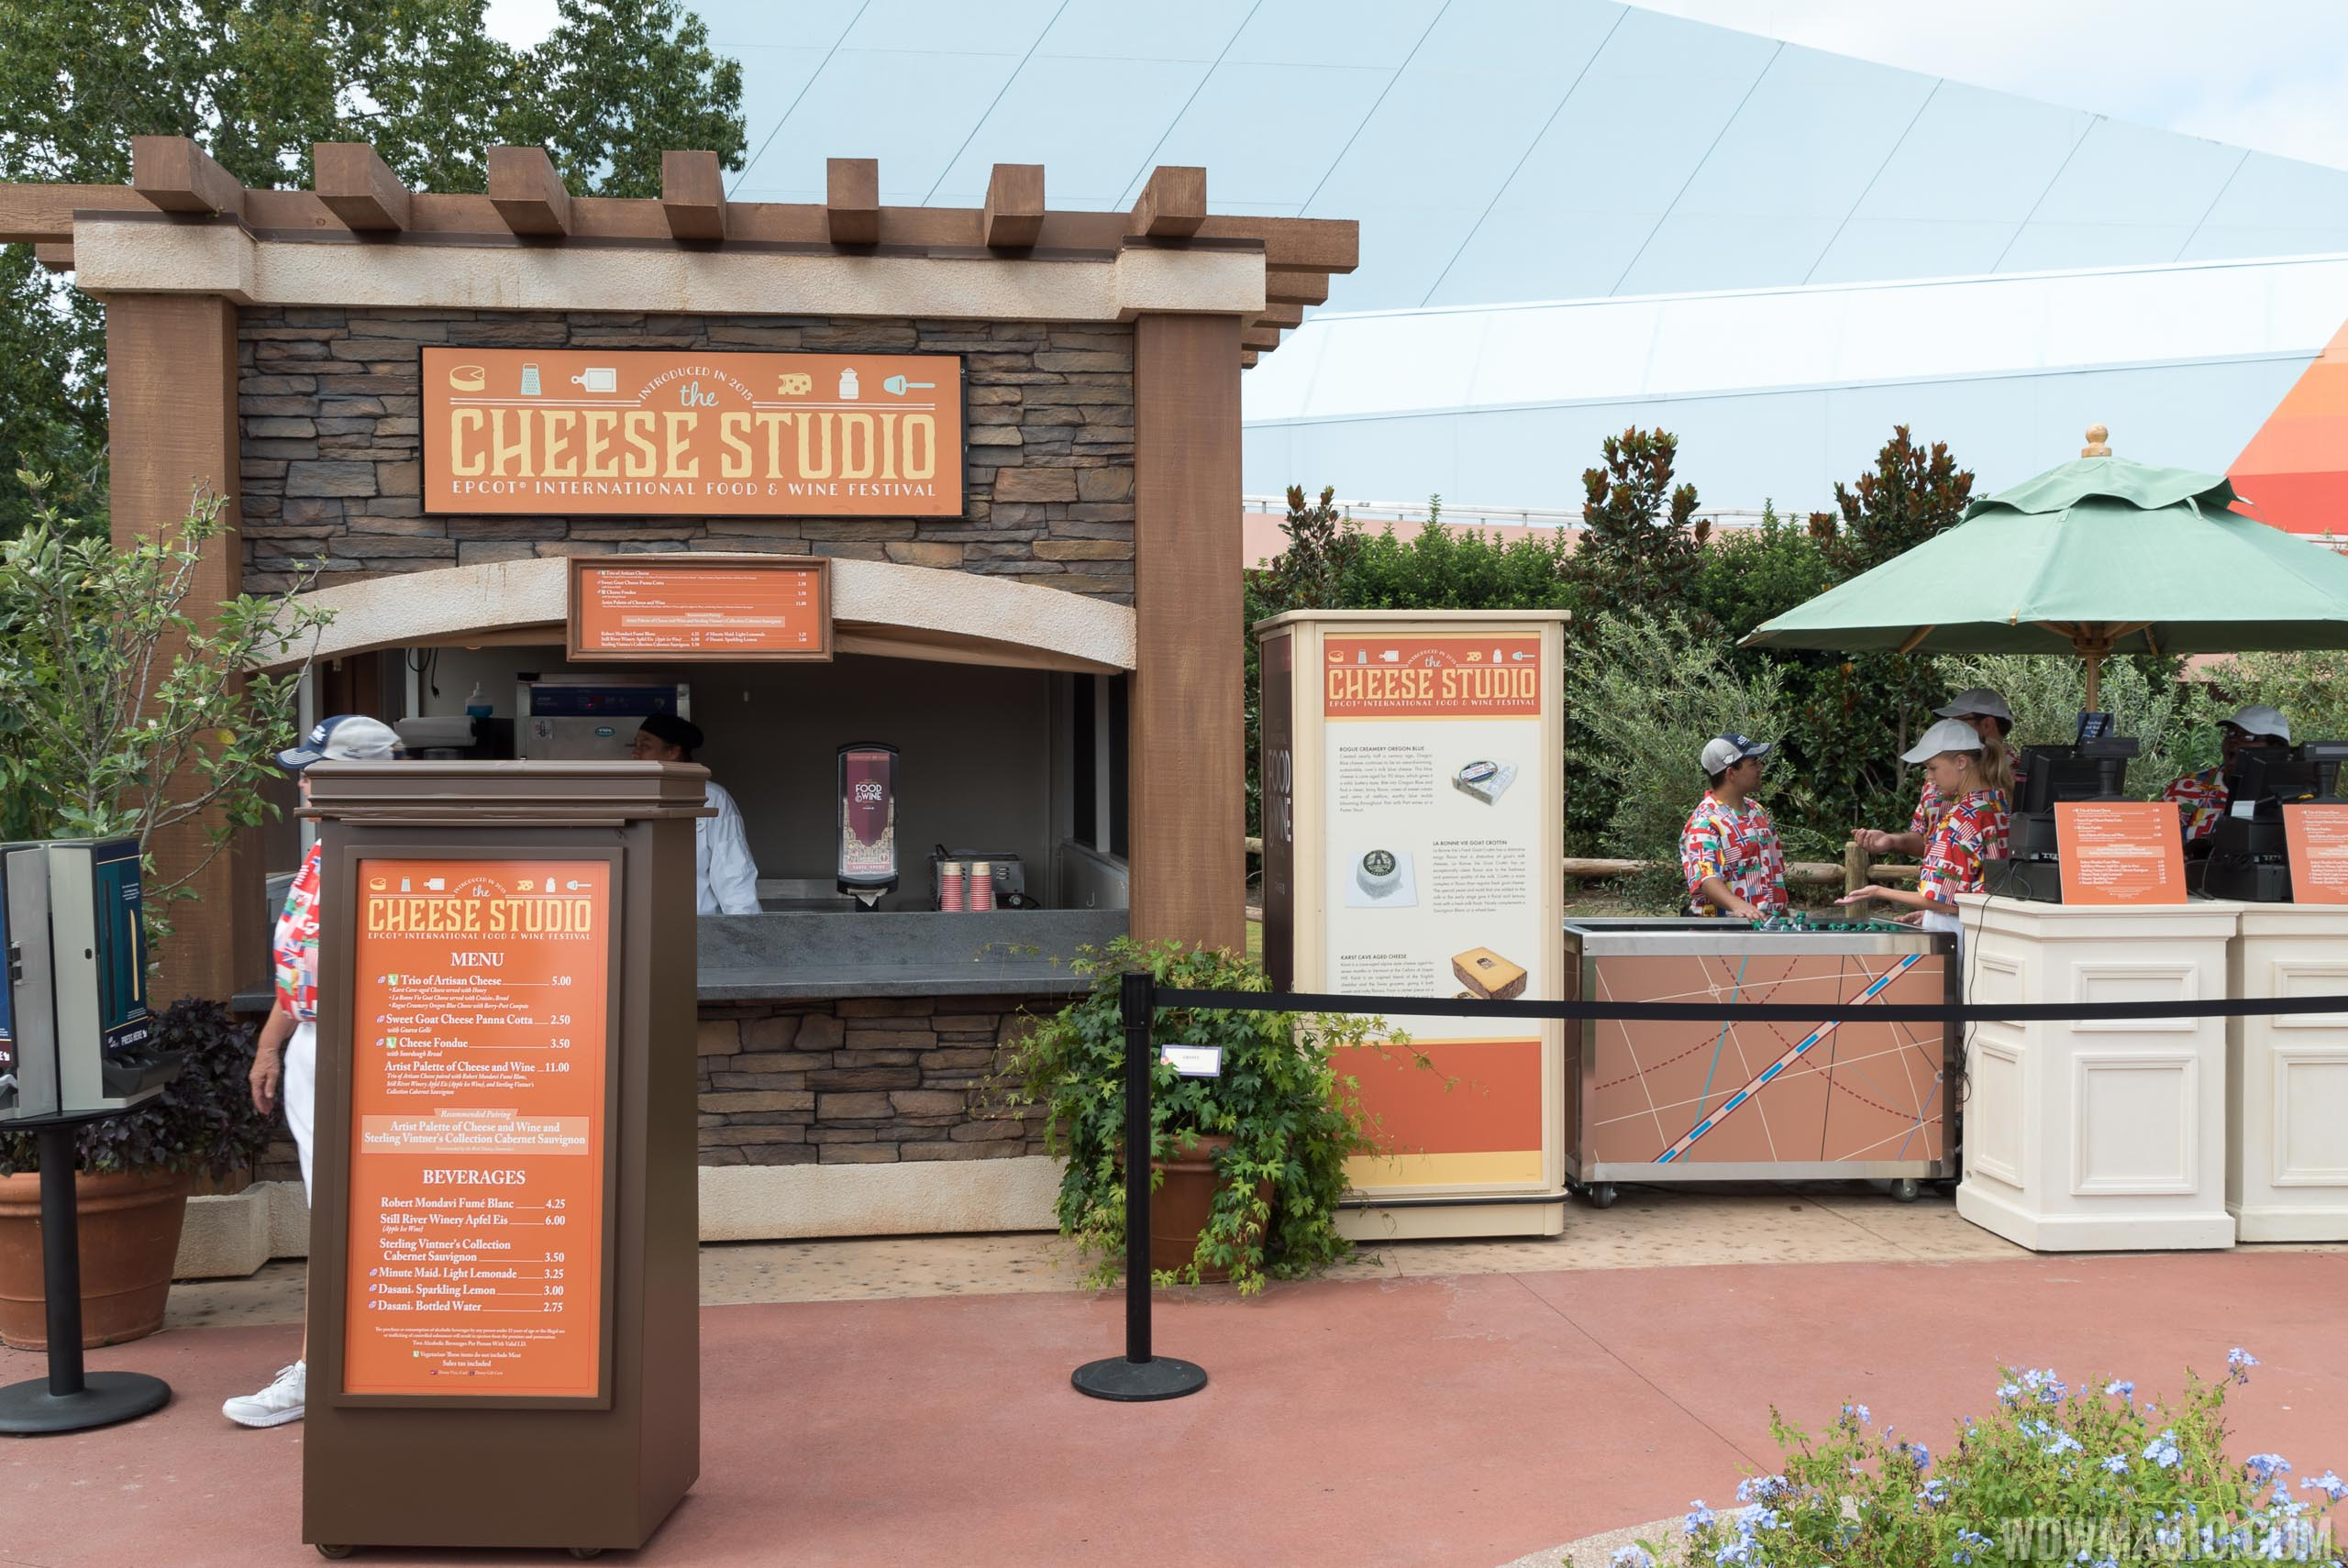 2015 Epcot Food and Wine Festival - Cheese Studio